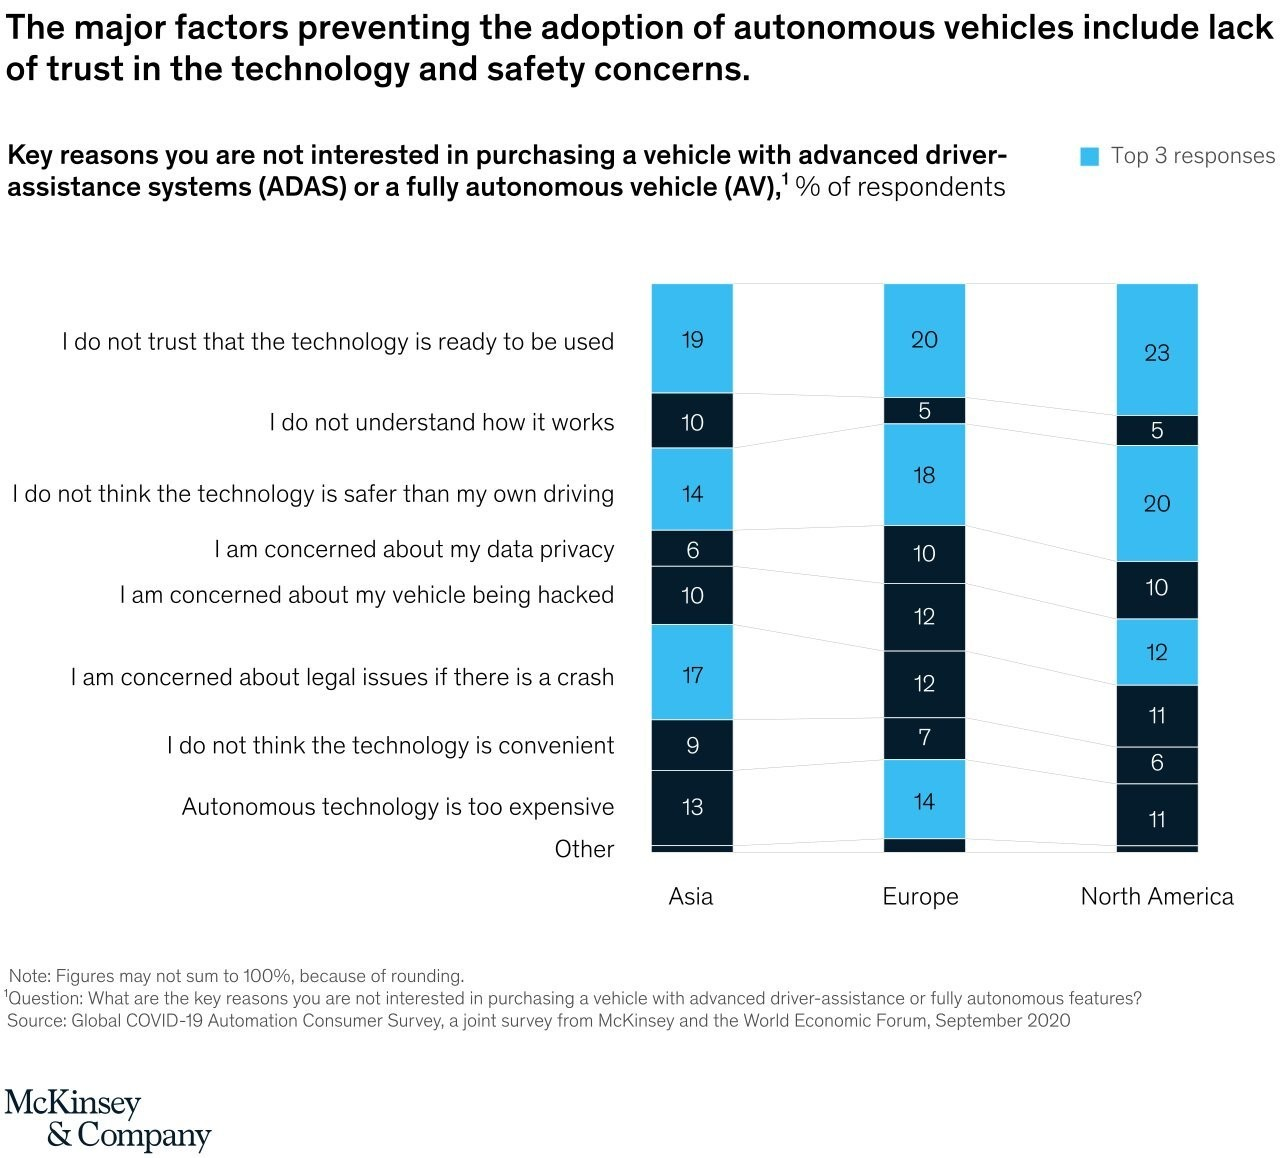 a chart showing that the major factors preventing the adoption of autonomous vehicles includes lack of trust in the technology and safety concerns